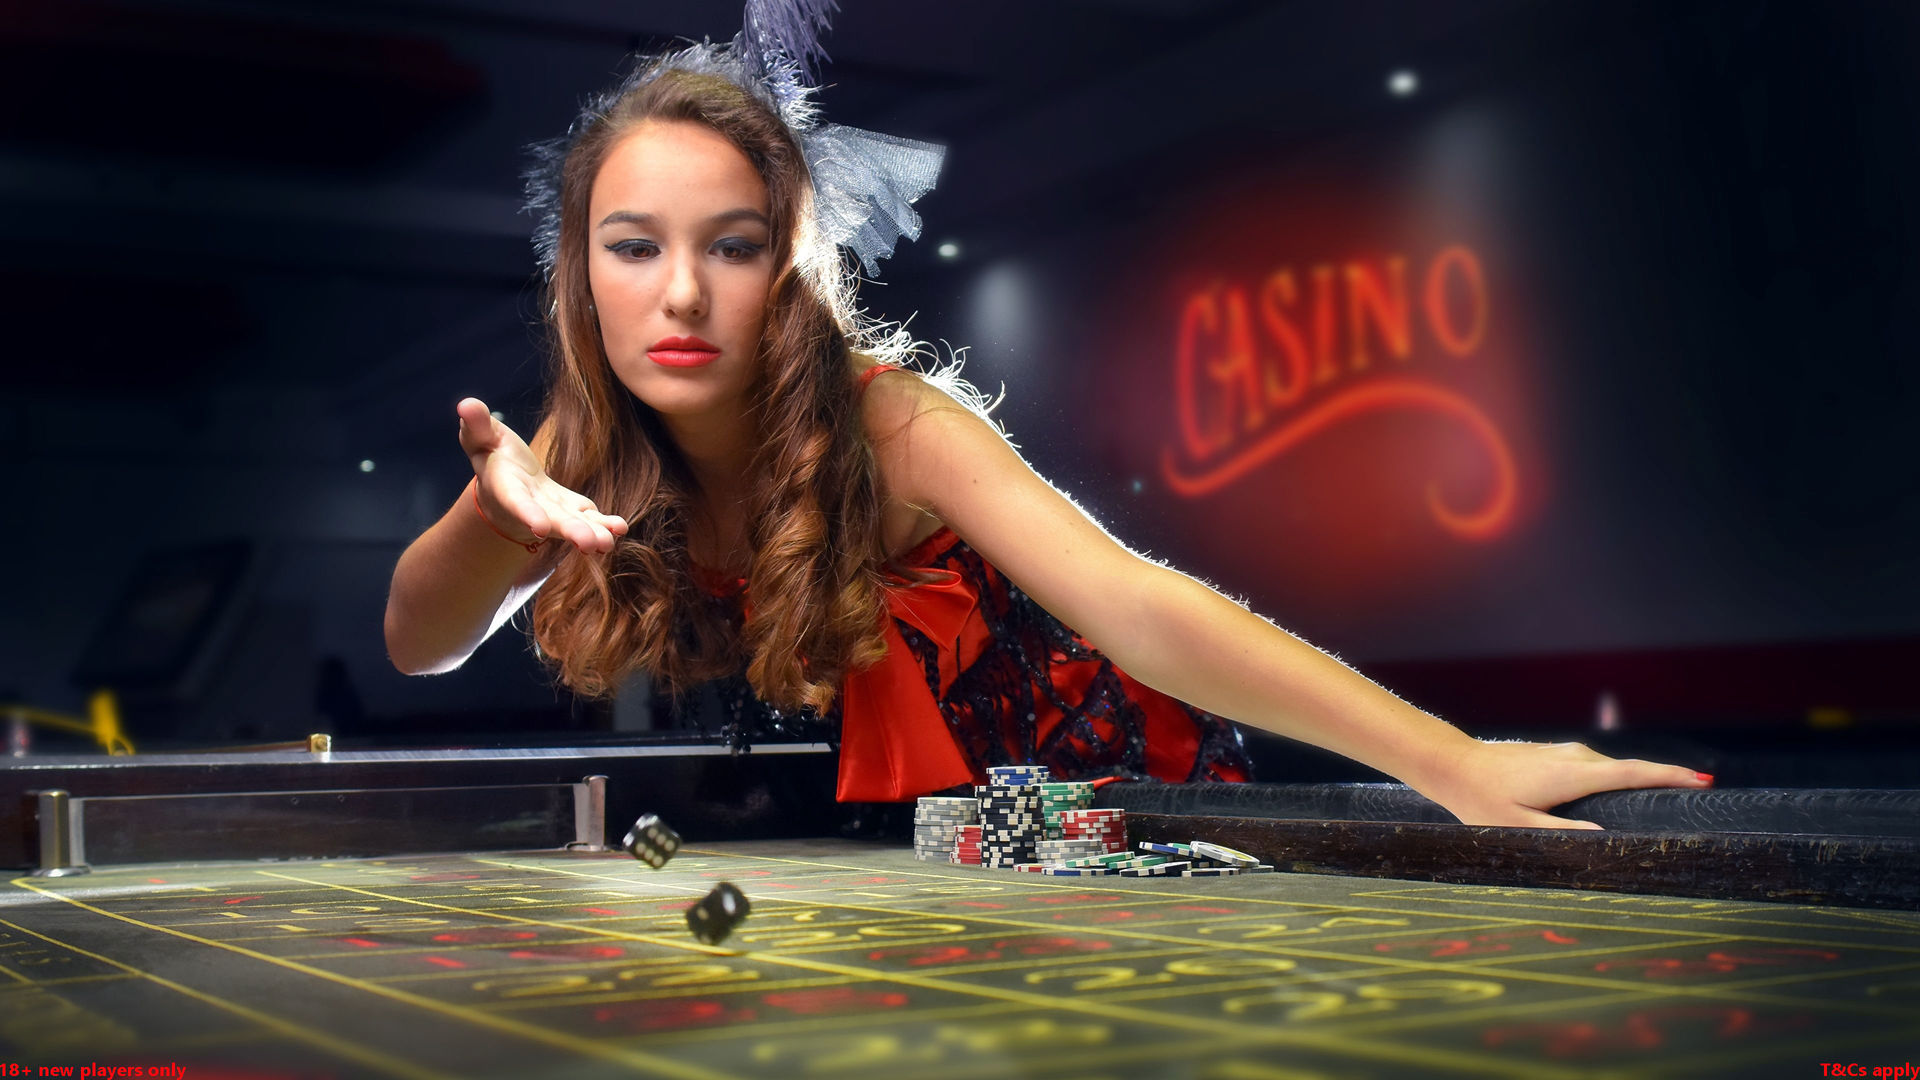 Basic plan online casino with Extra Prize in United Kingdom